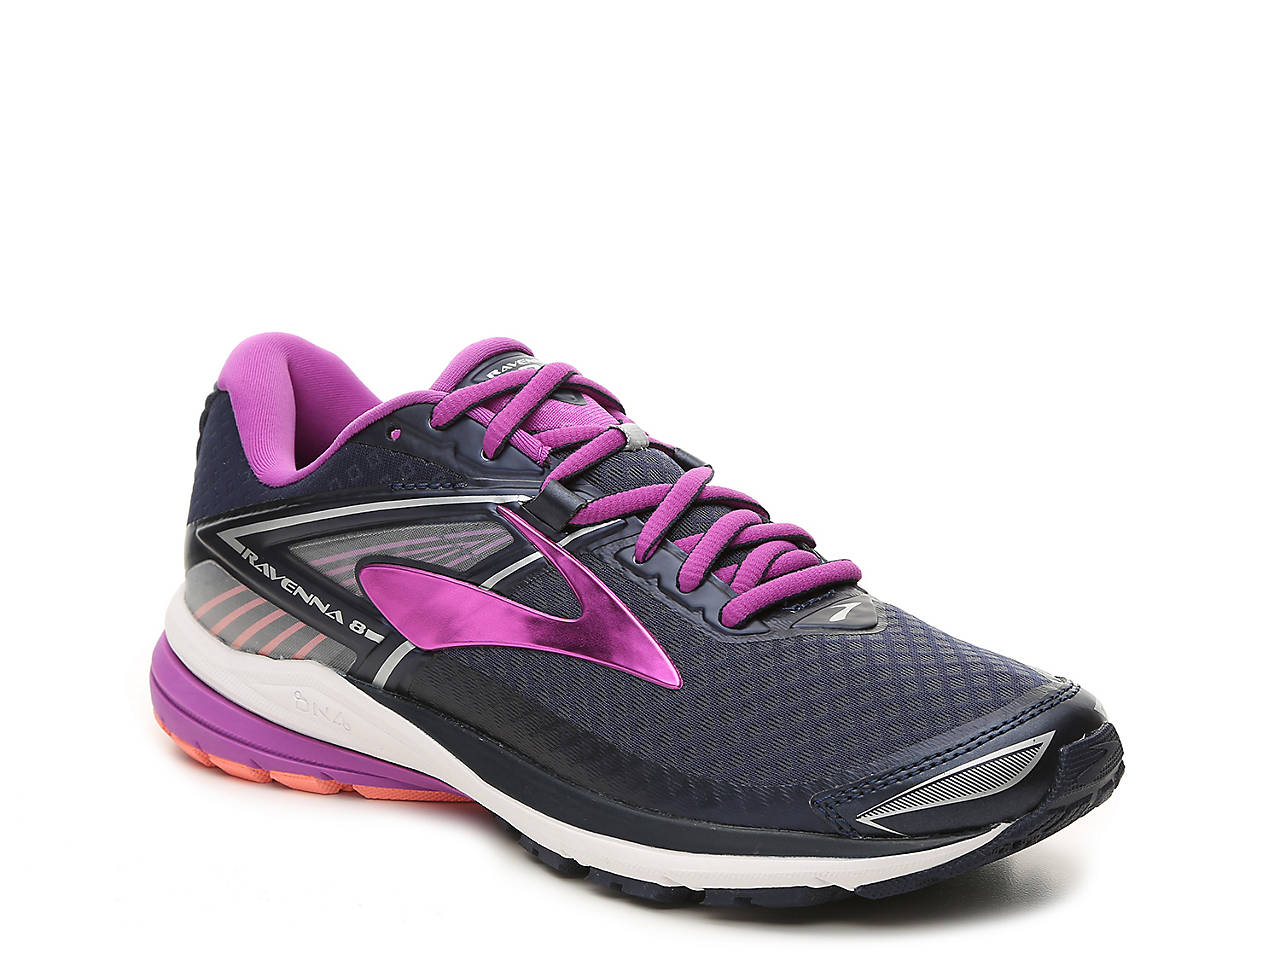 Ravenna 8 Performance Running Shoe - Women's